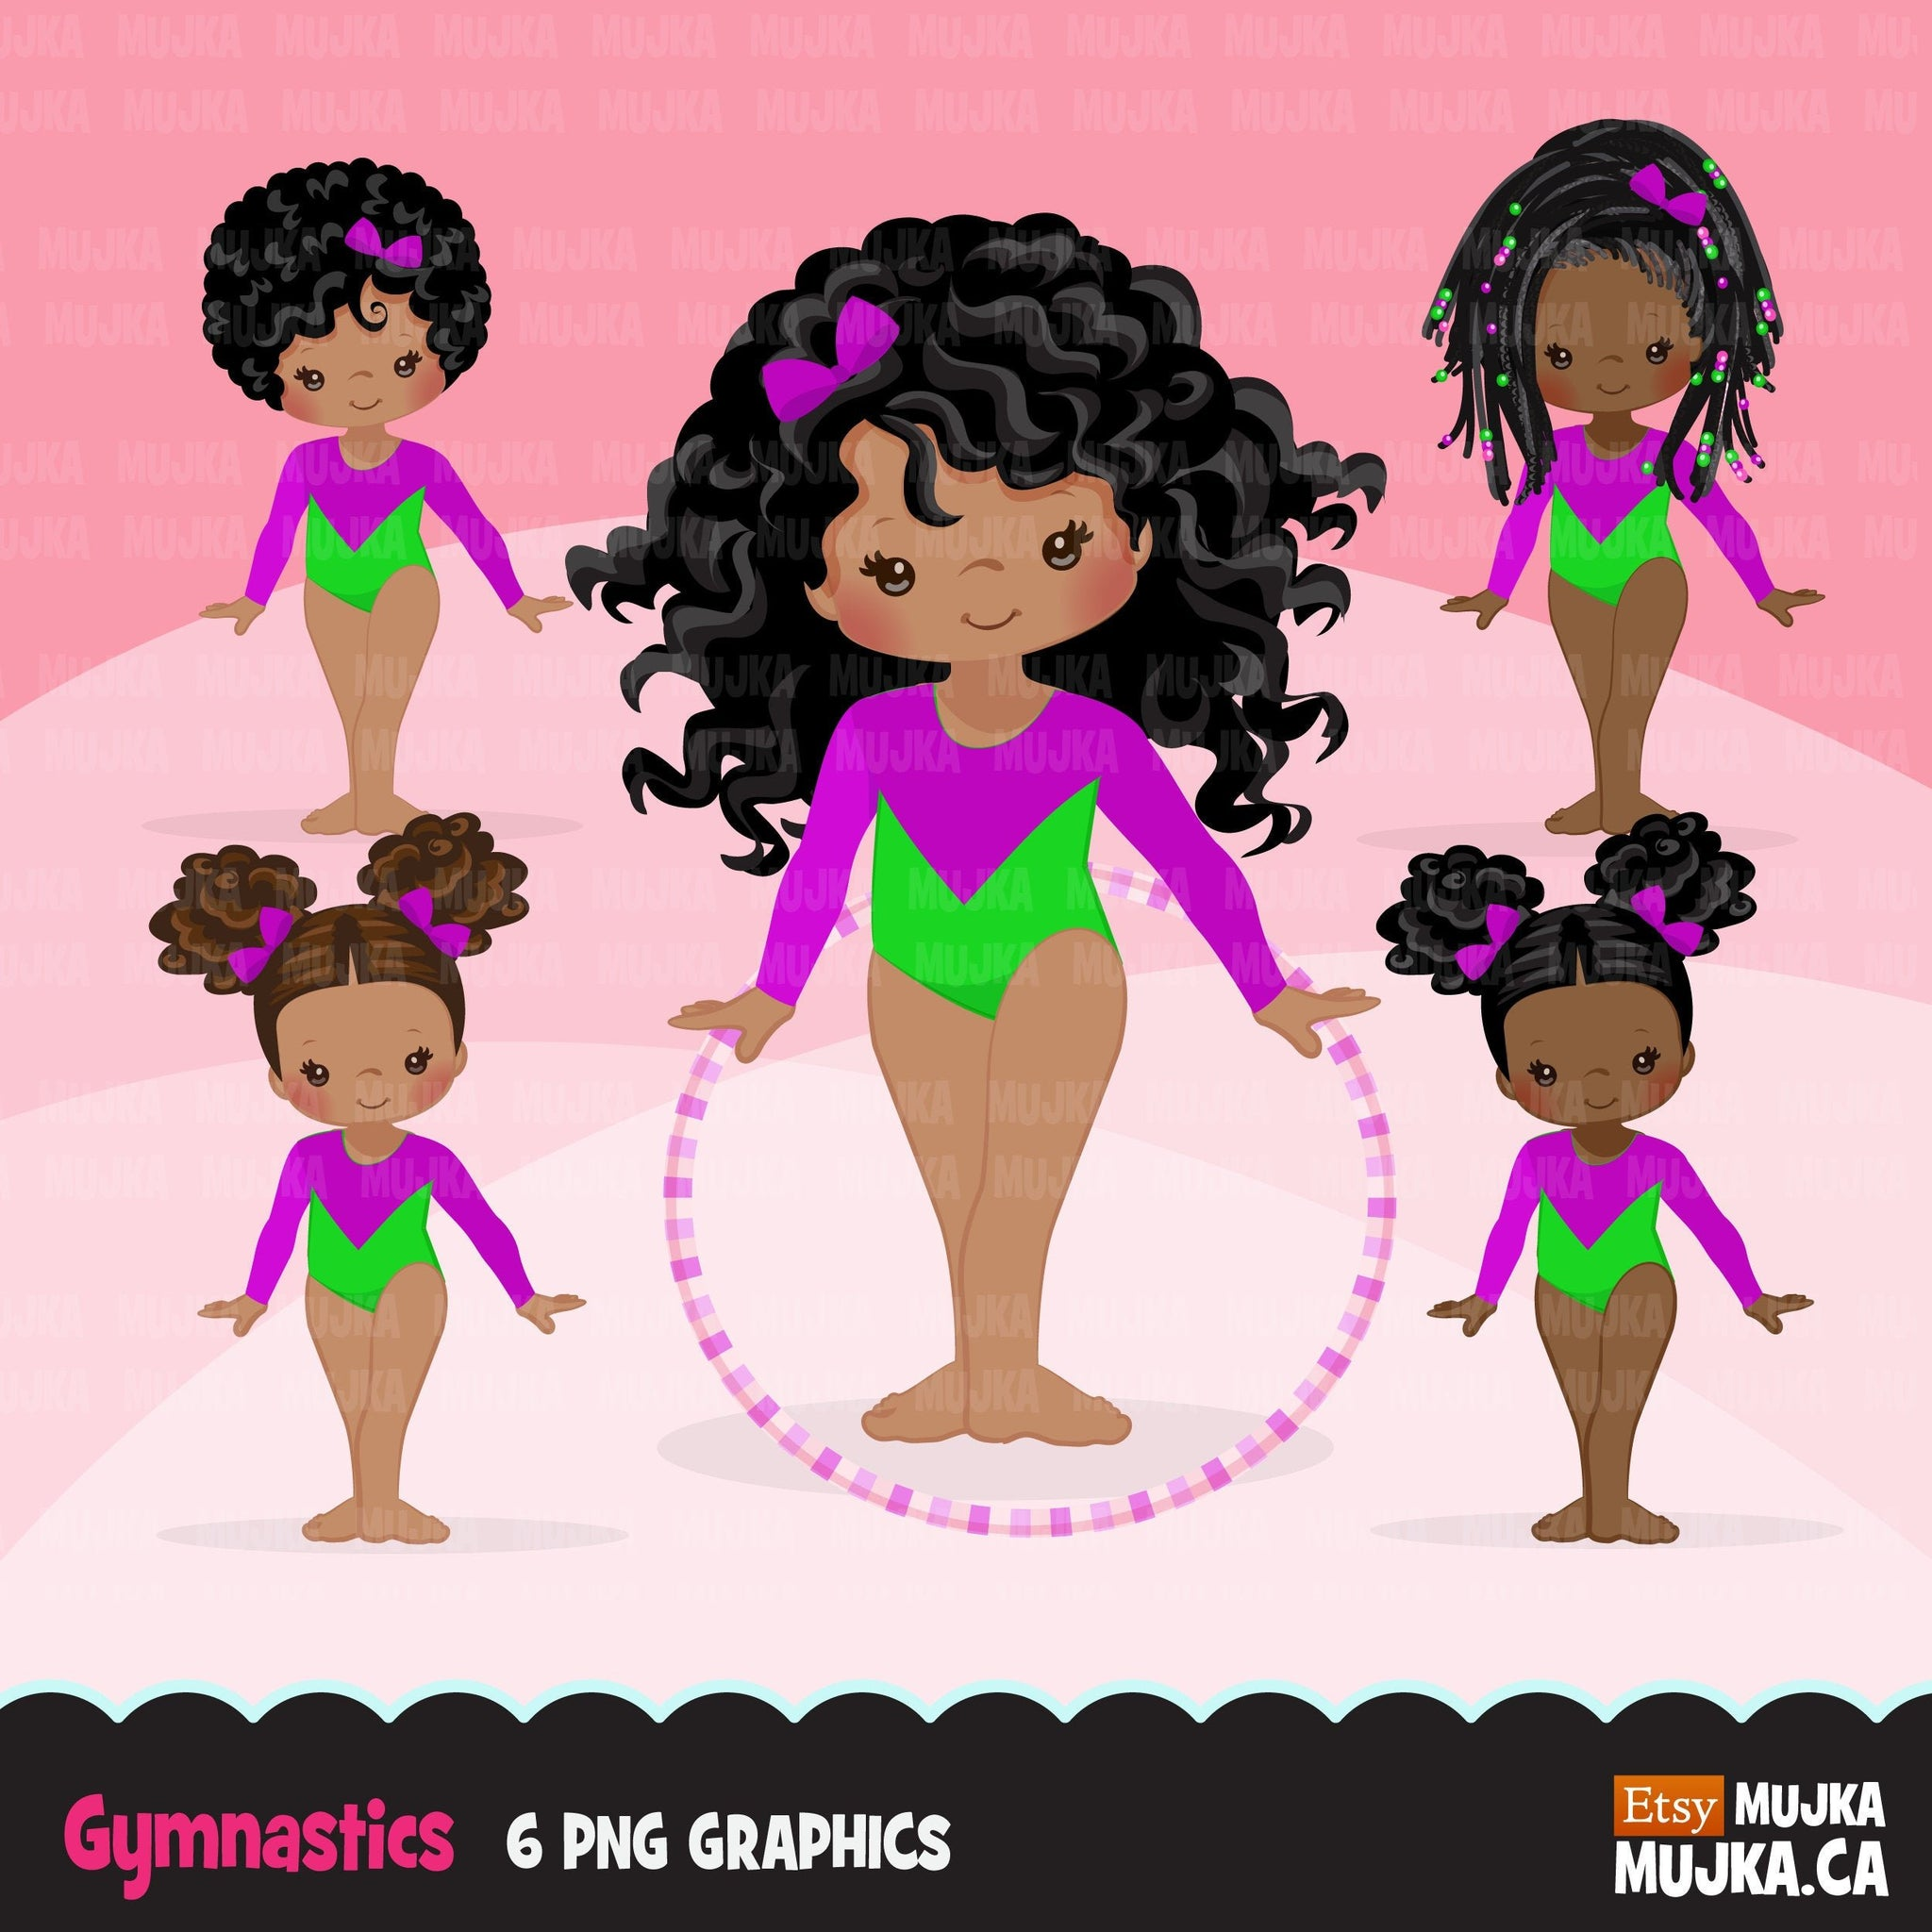 Gymnastics Clipart, Gymnast black girls, hula hoop, sports, school activity, commercial use PNG graphics